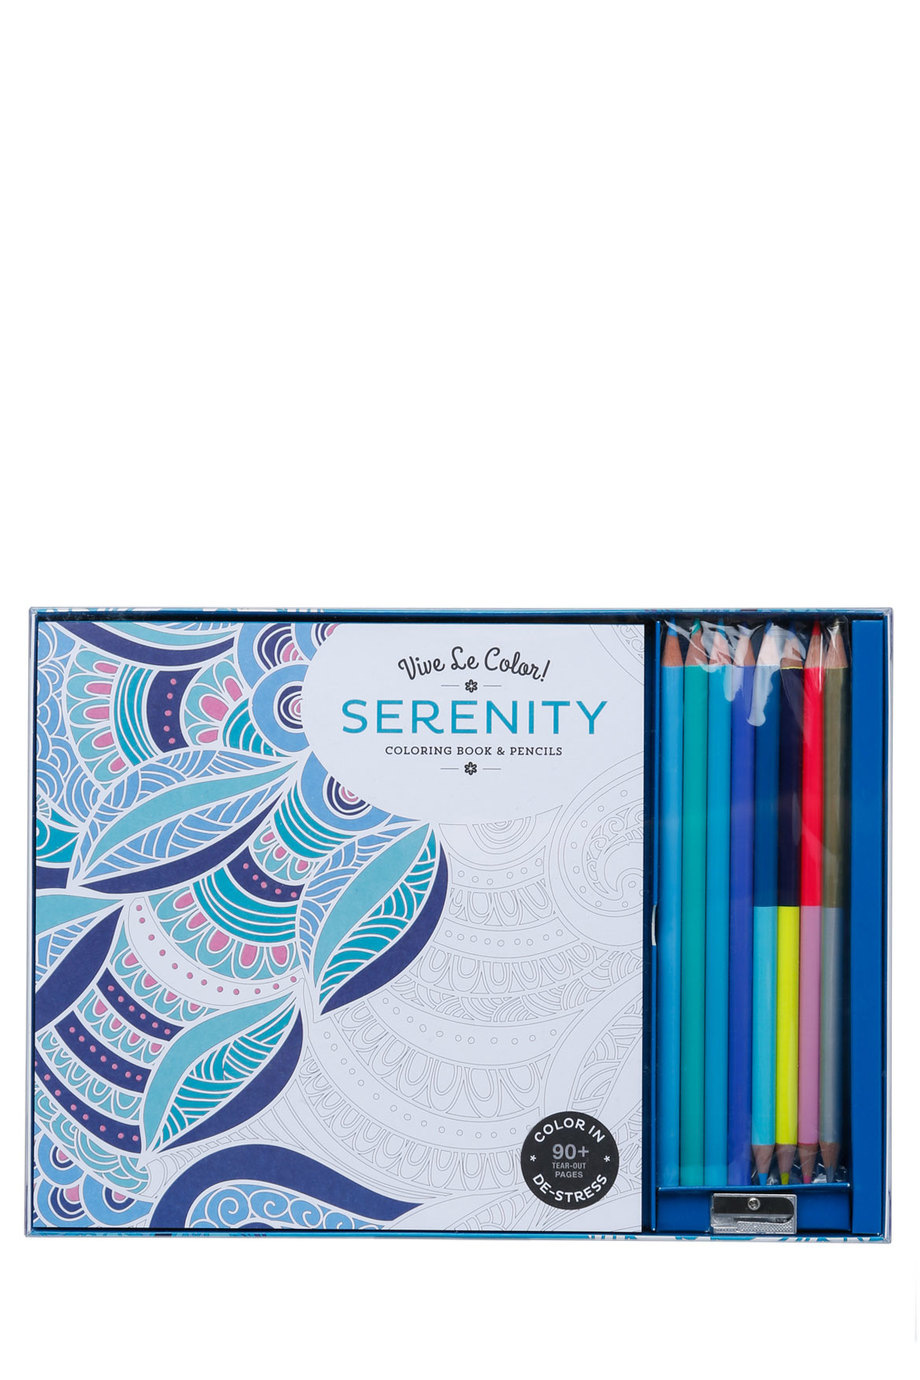 Coloring book yves saint laurent -  Vive Le Color Serenity Coloring Book And Pencils Set Myer Online